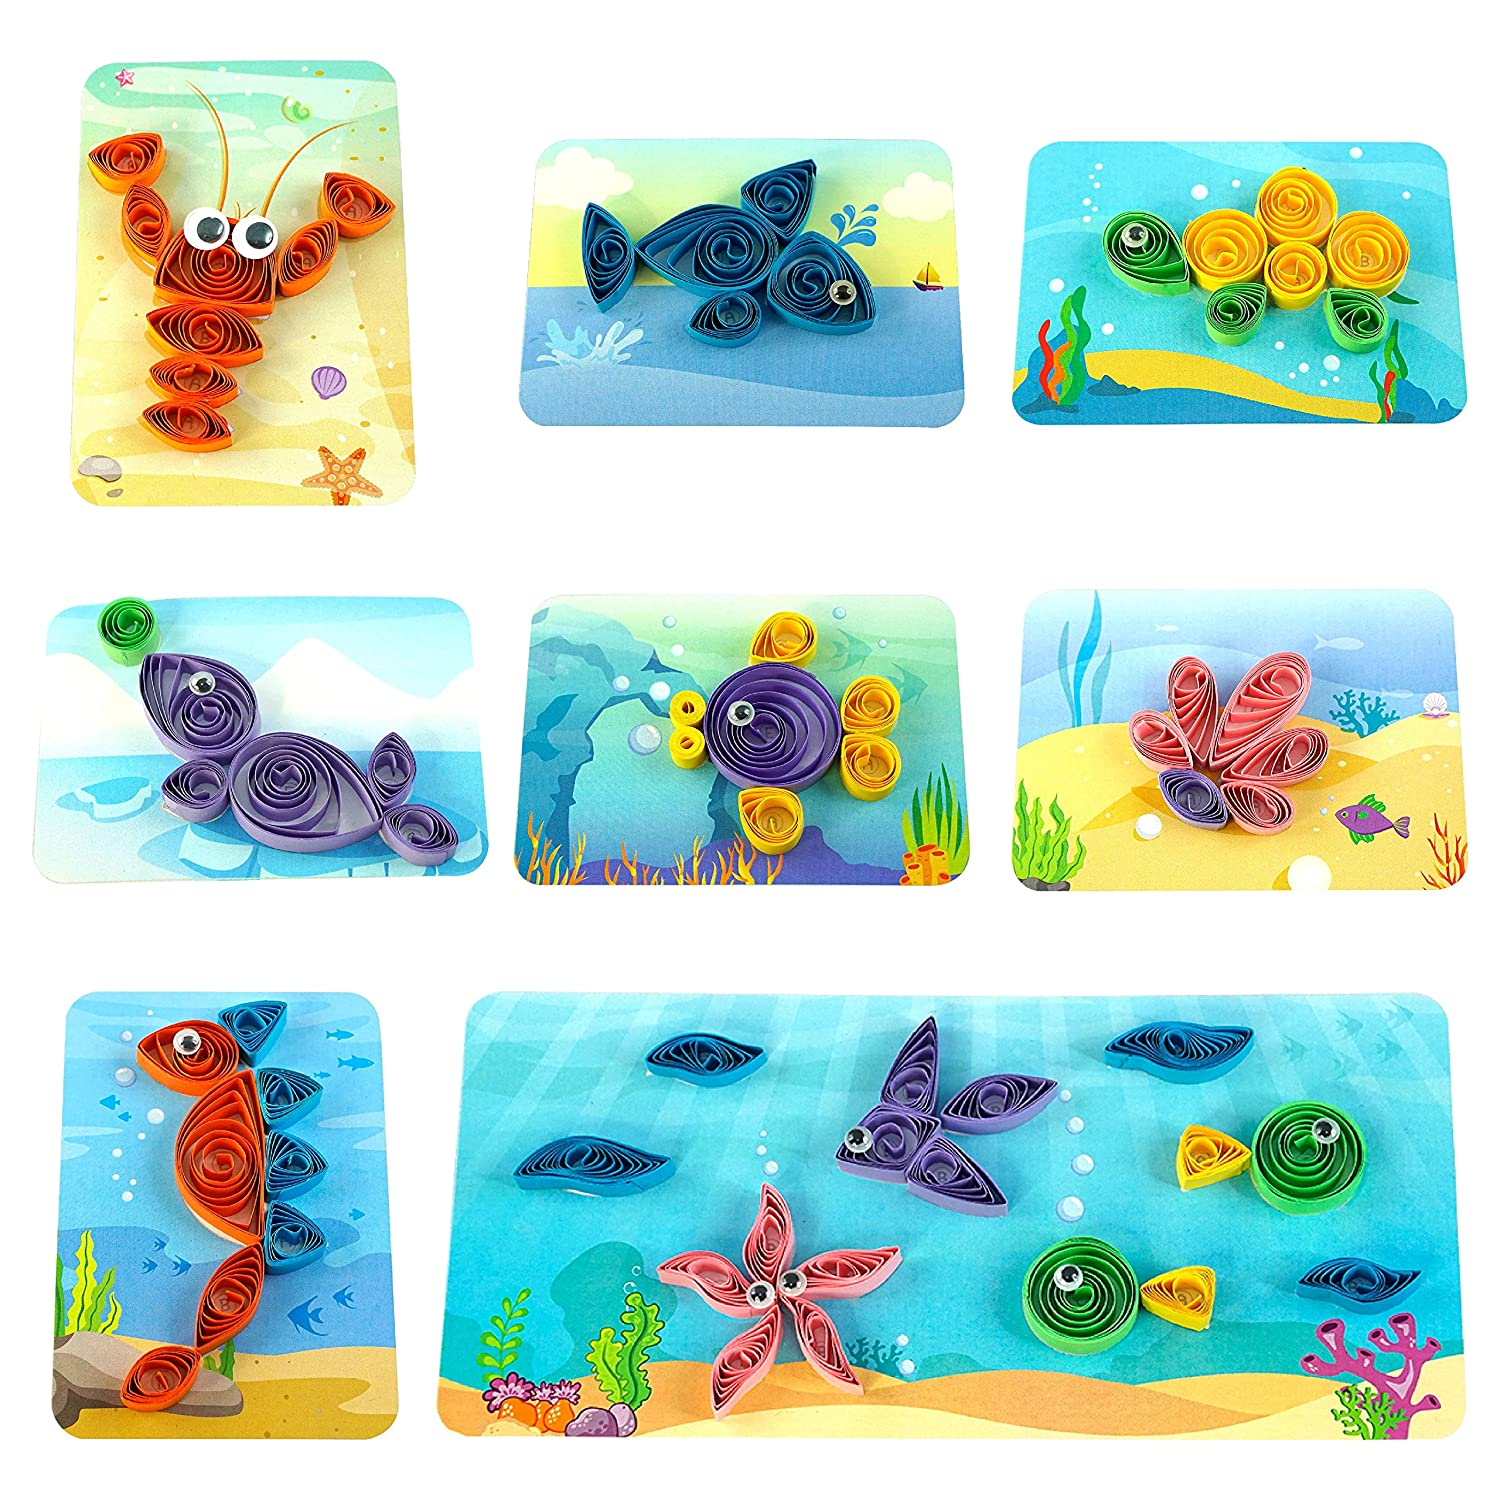 for Kids Age 5 and Above By the Buy Contains 8 Creative Self-Adhesive Cards Sticky-Back Quilling Strip /& Mini Sizing Board Amazing Ocean Theme Pack for Fun and Easy Quilling Activity Spyrosity Ocean